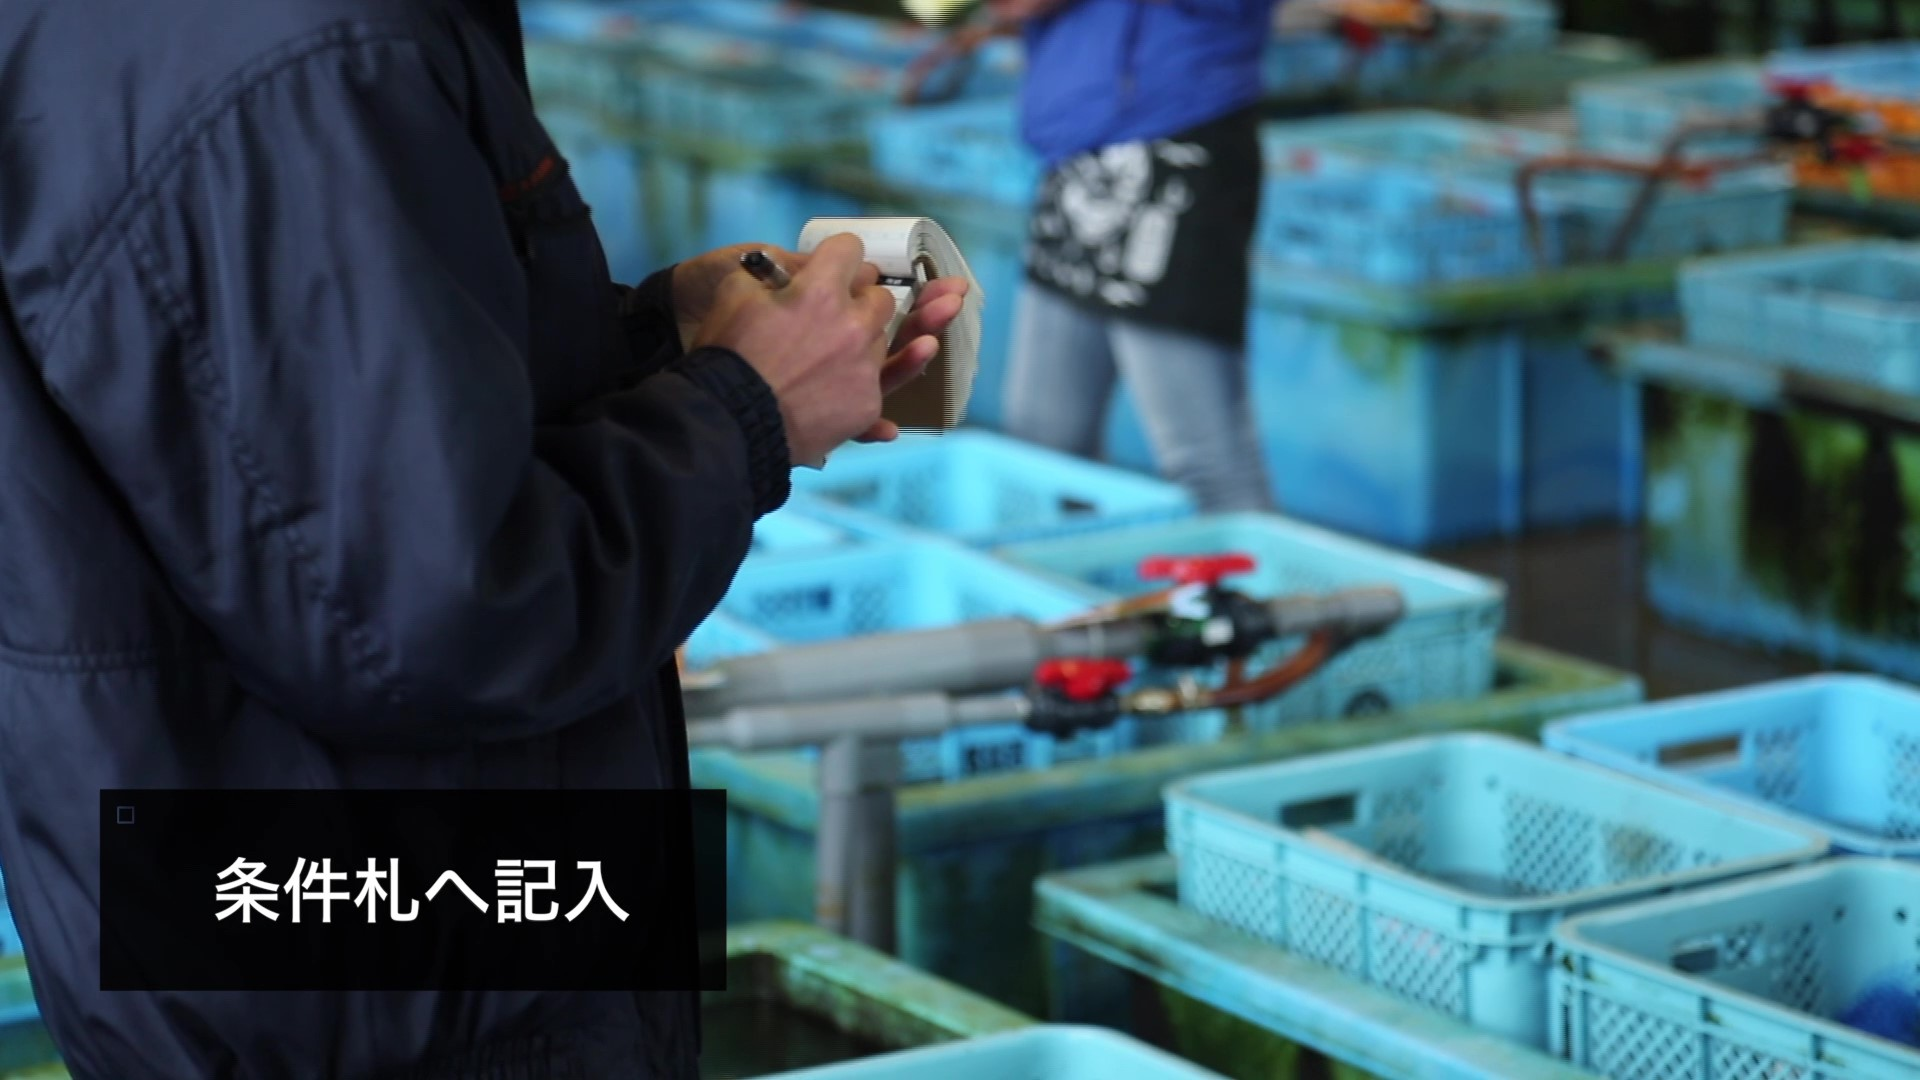 Picture of a man writing something in a small notebook surveying boxes of fish